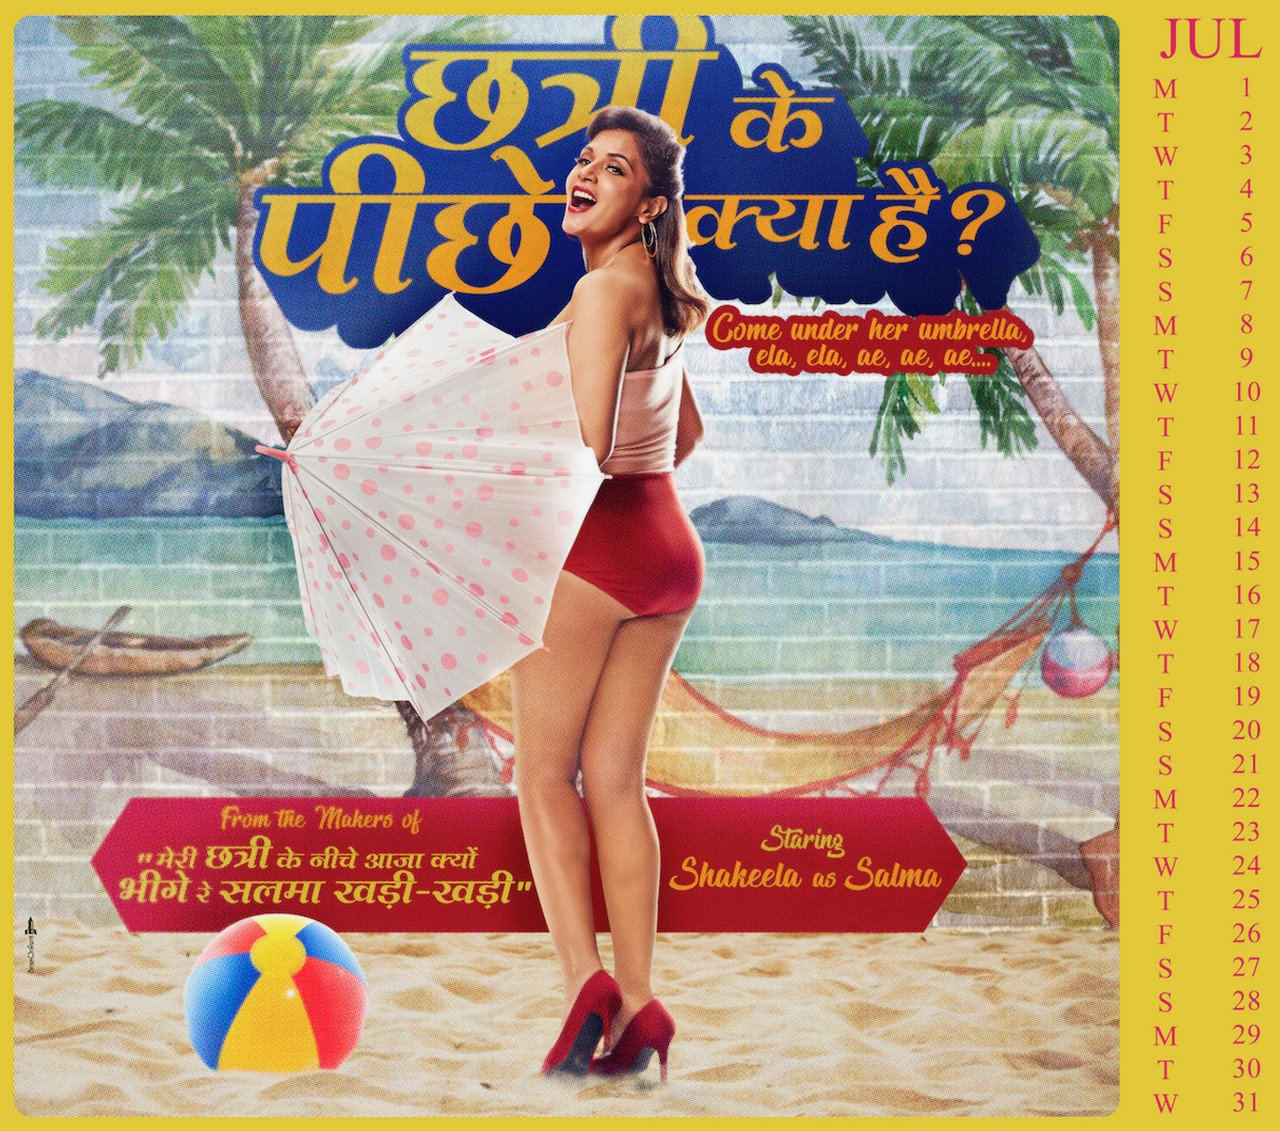 Richa Chadha launches the quirkiest 'Shakeela Calendar' for 2019